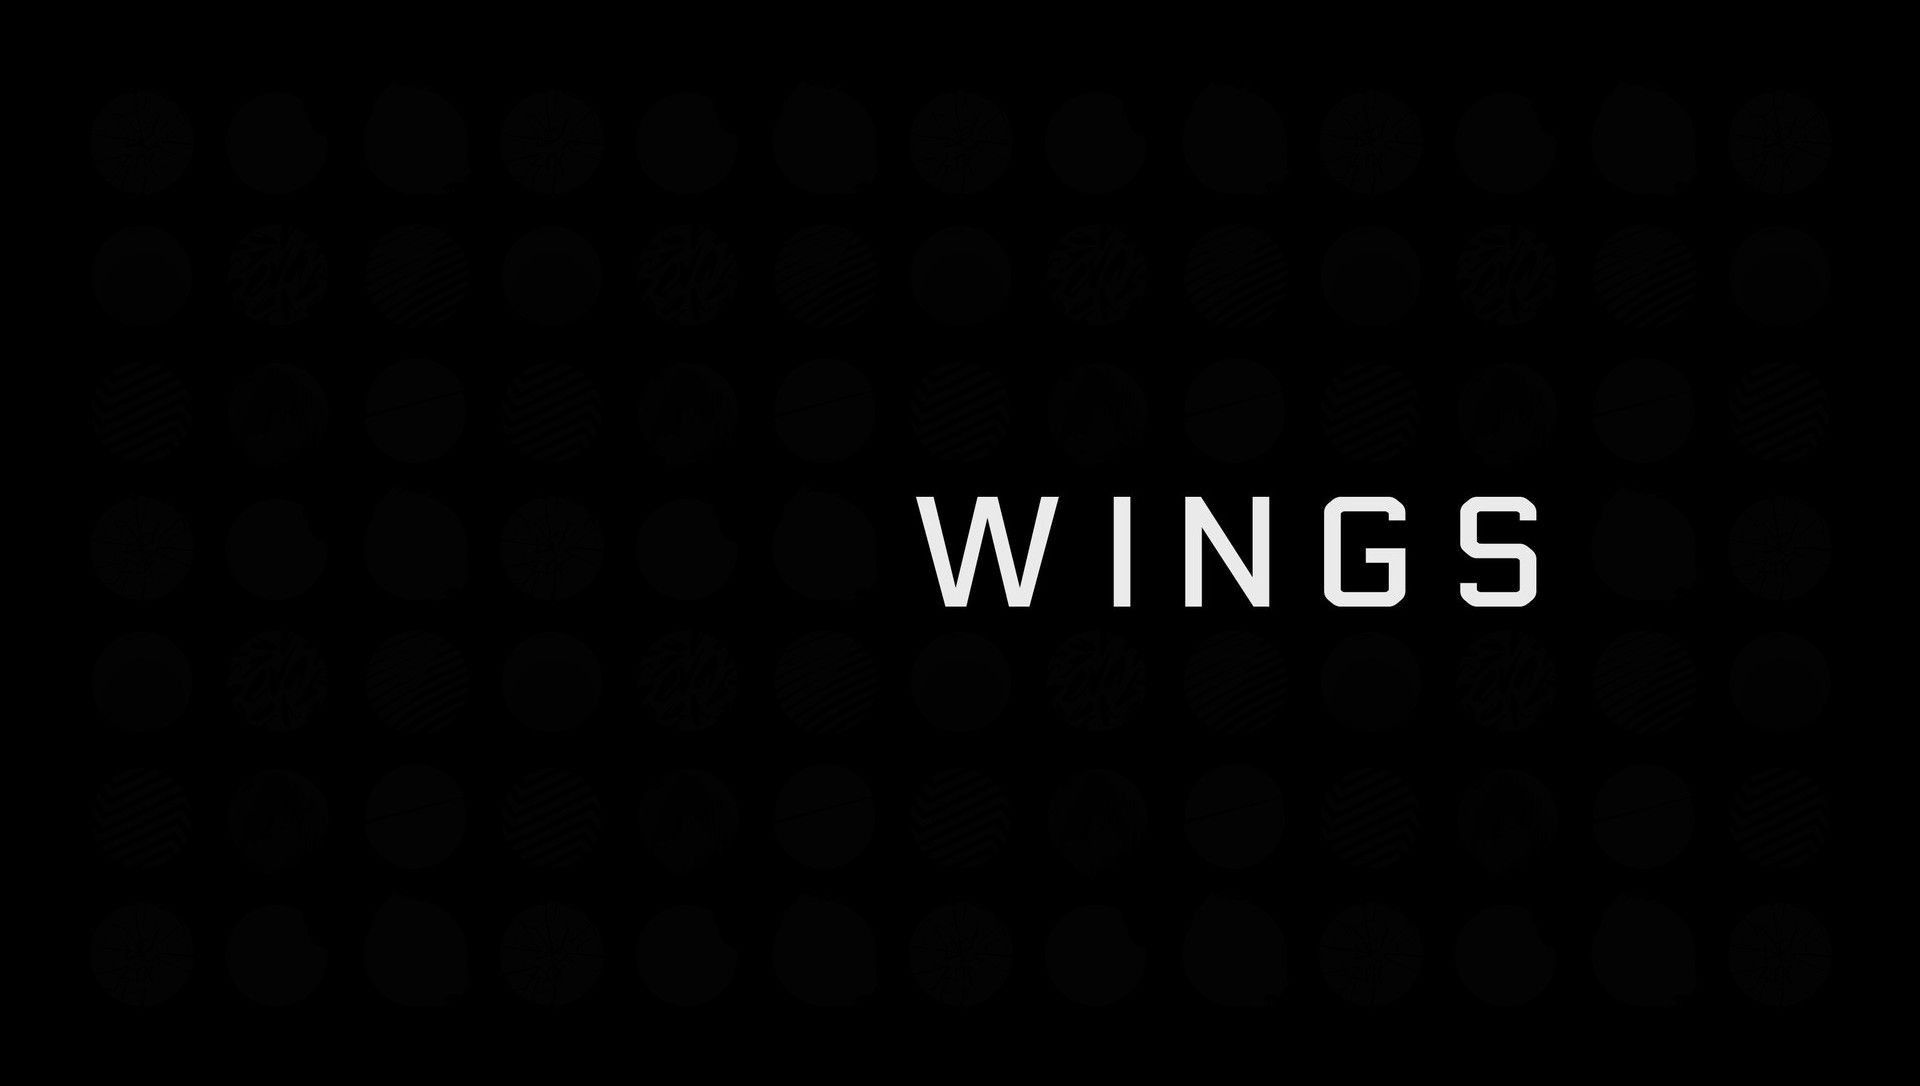 1920x1086 Wings Desktop Wallpapers Pantalla